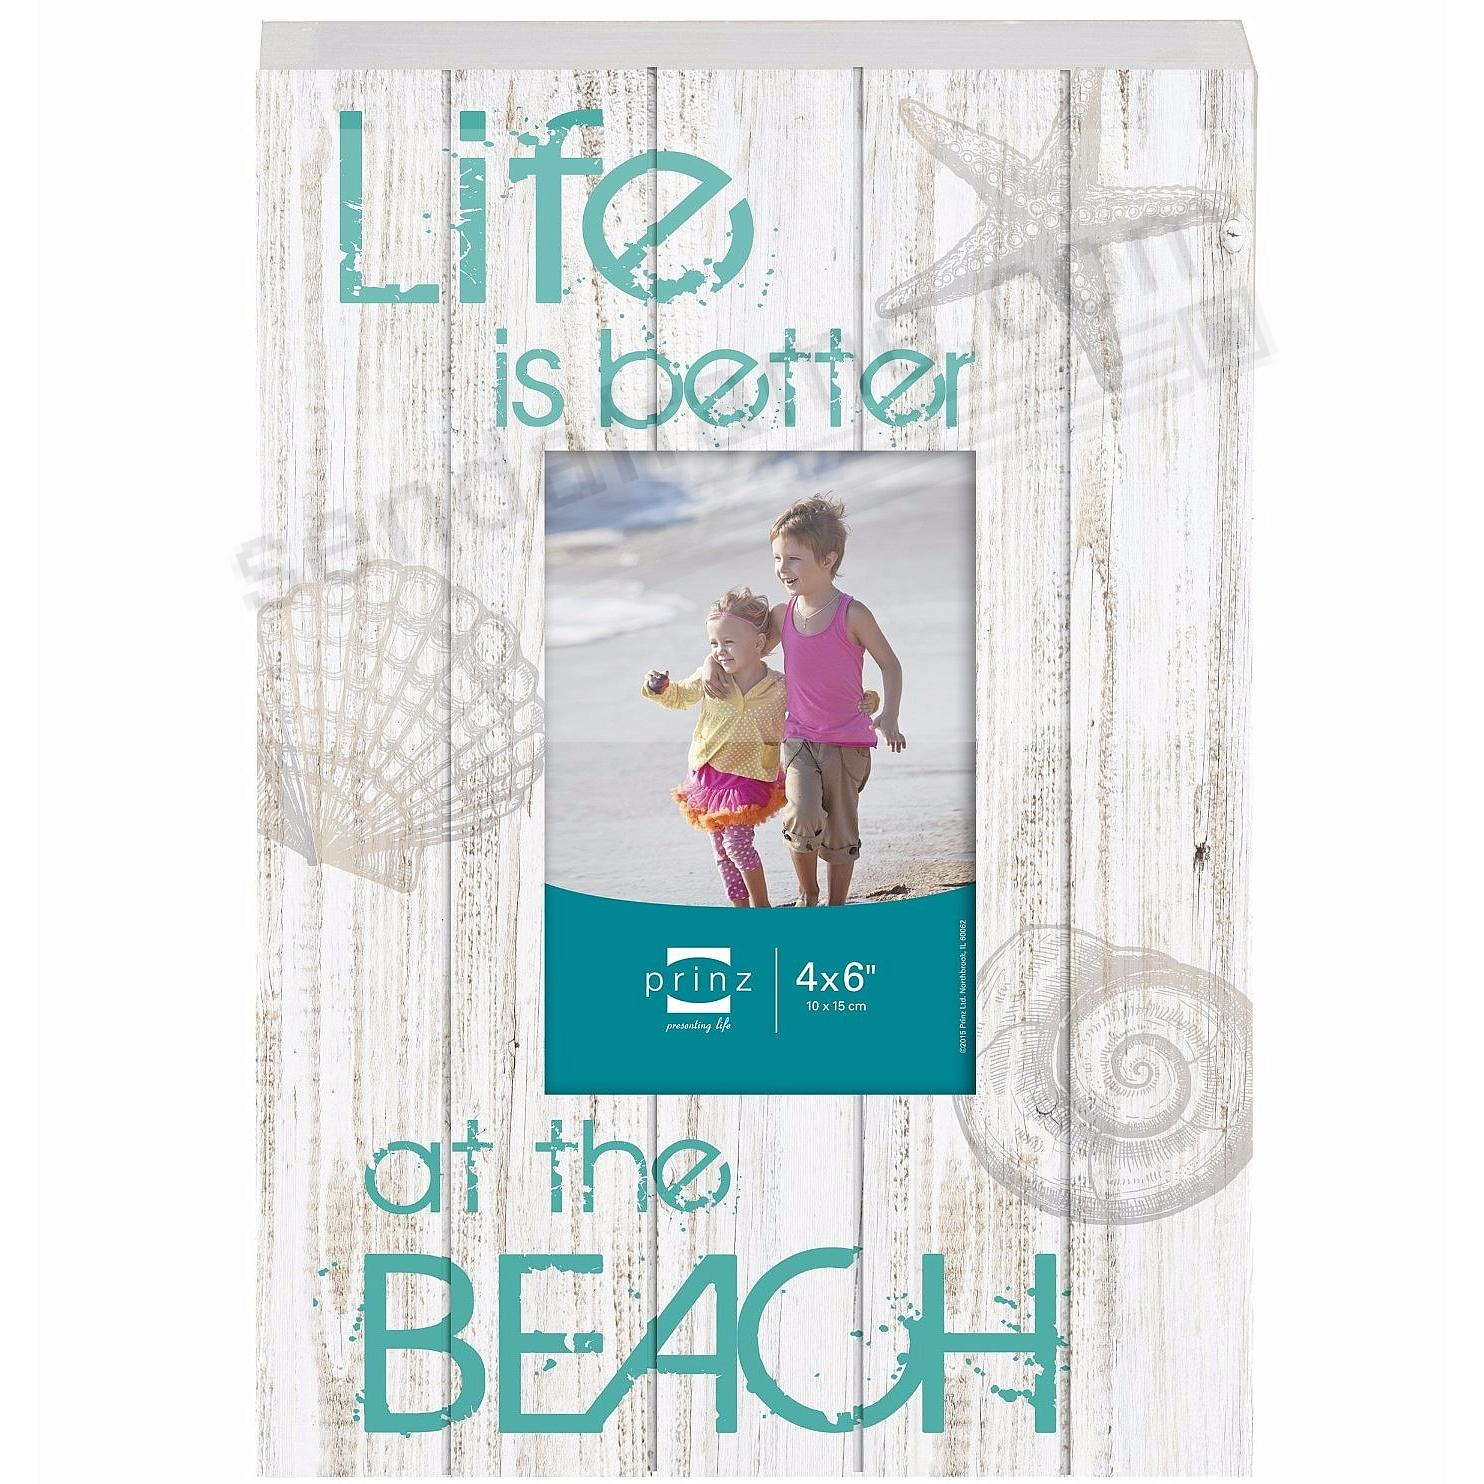 LIFE IS BETTER AT THE BEACH<br>Distressed Wood Frame Sign by Prinz&reg;